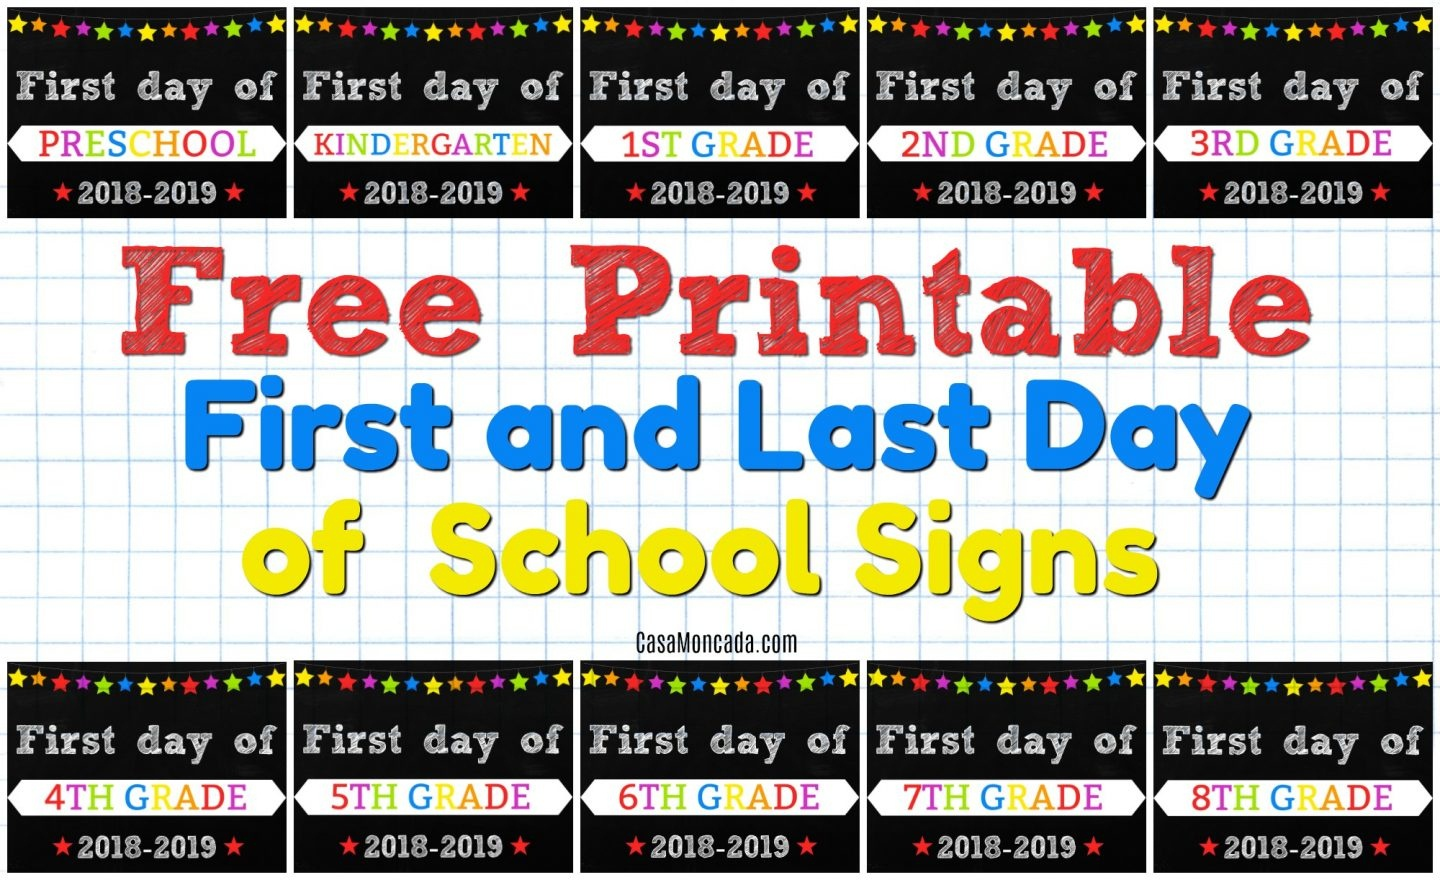 Free Printable First And Last Day Of School Signs - Casa Moncada - First Day Of School Printable Free